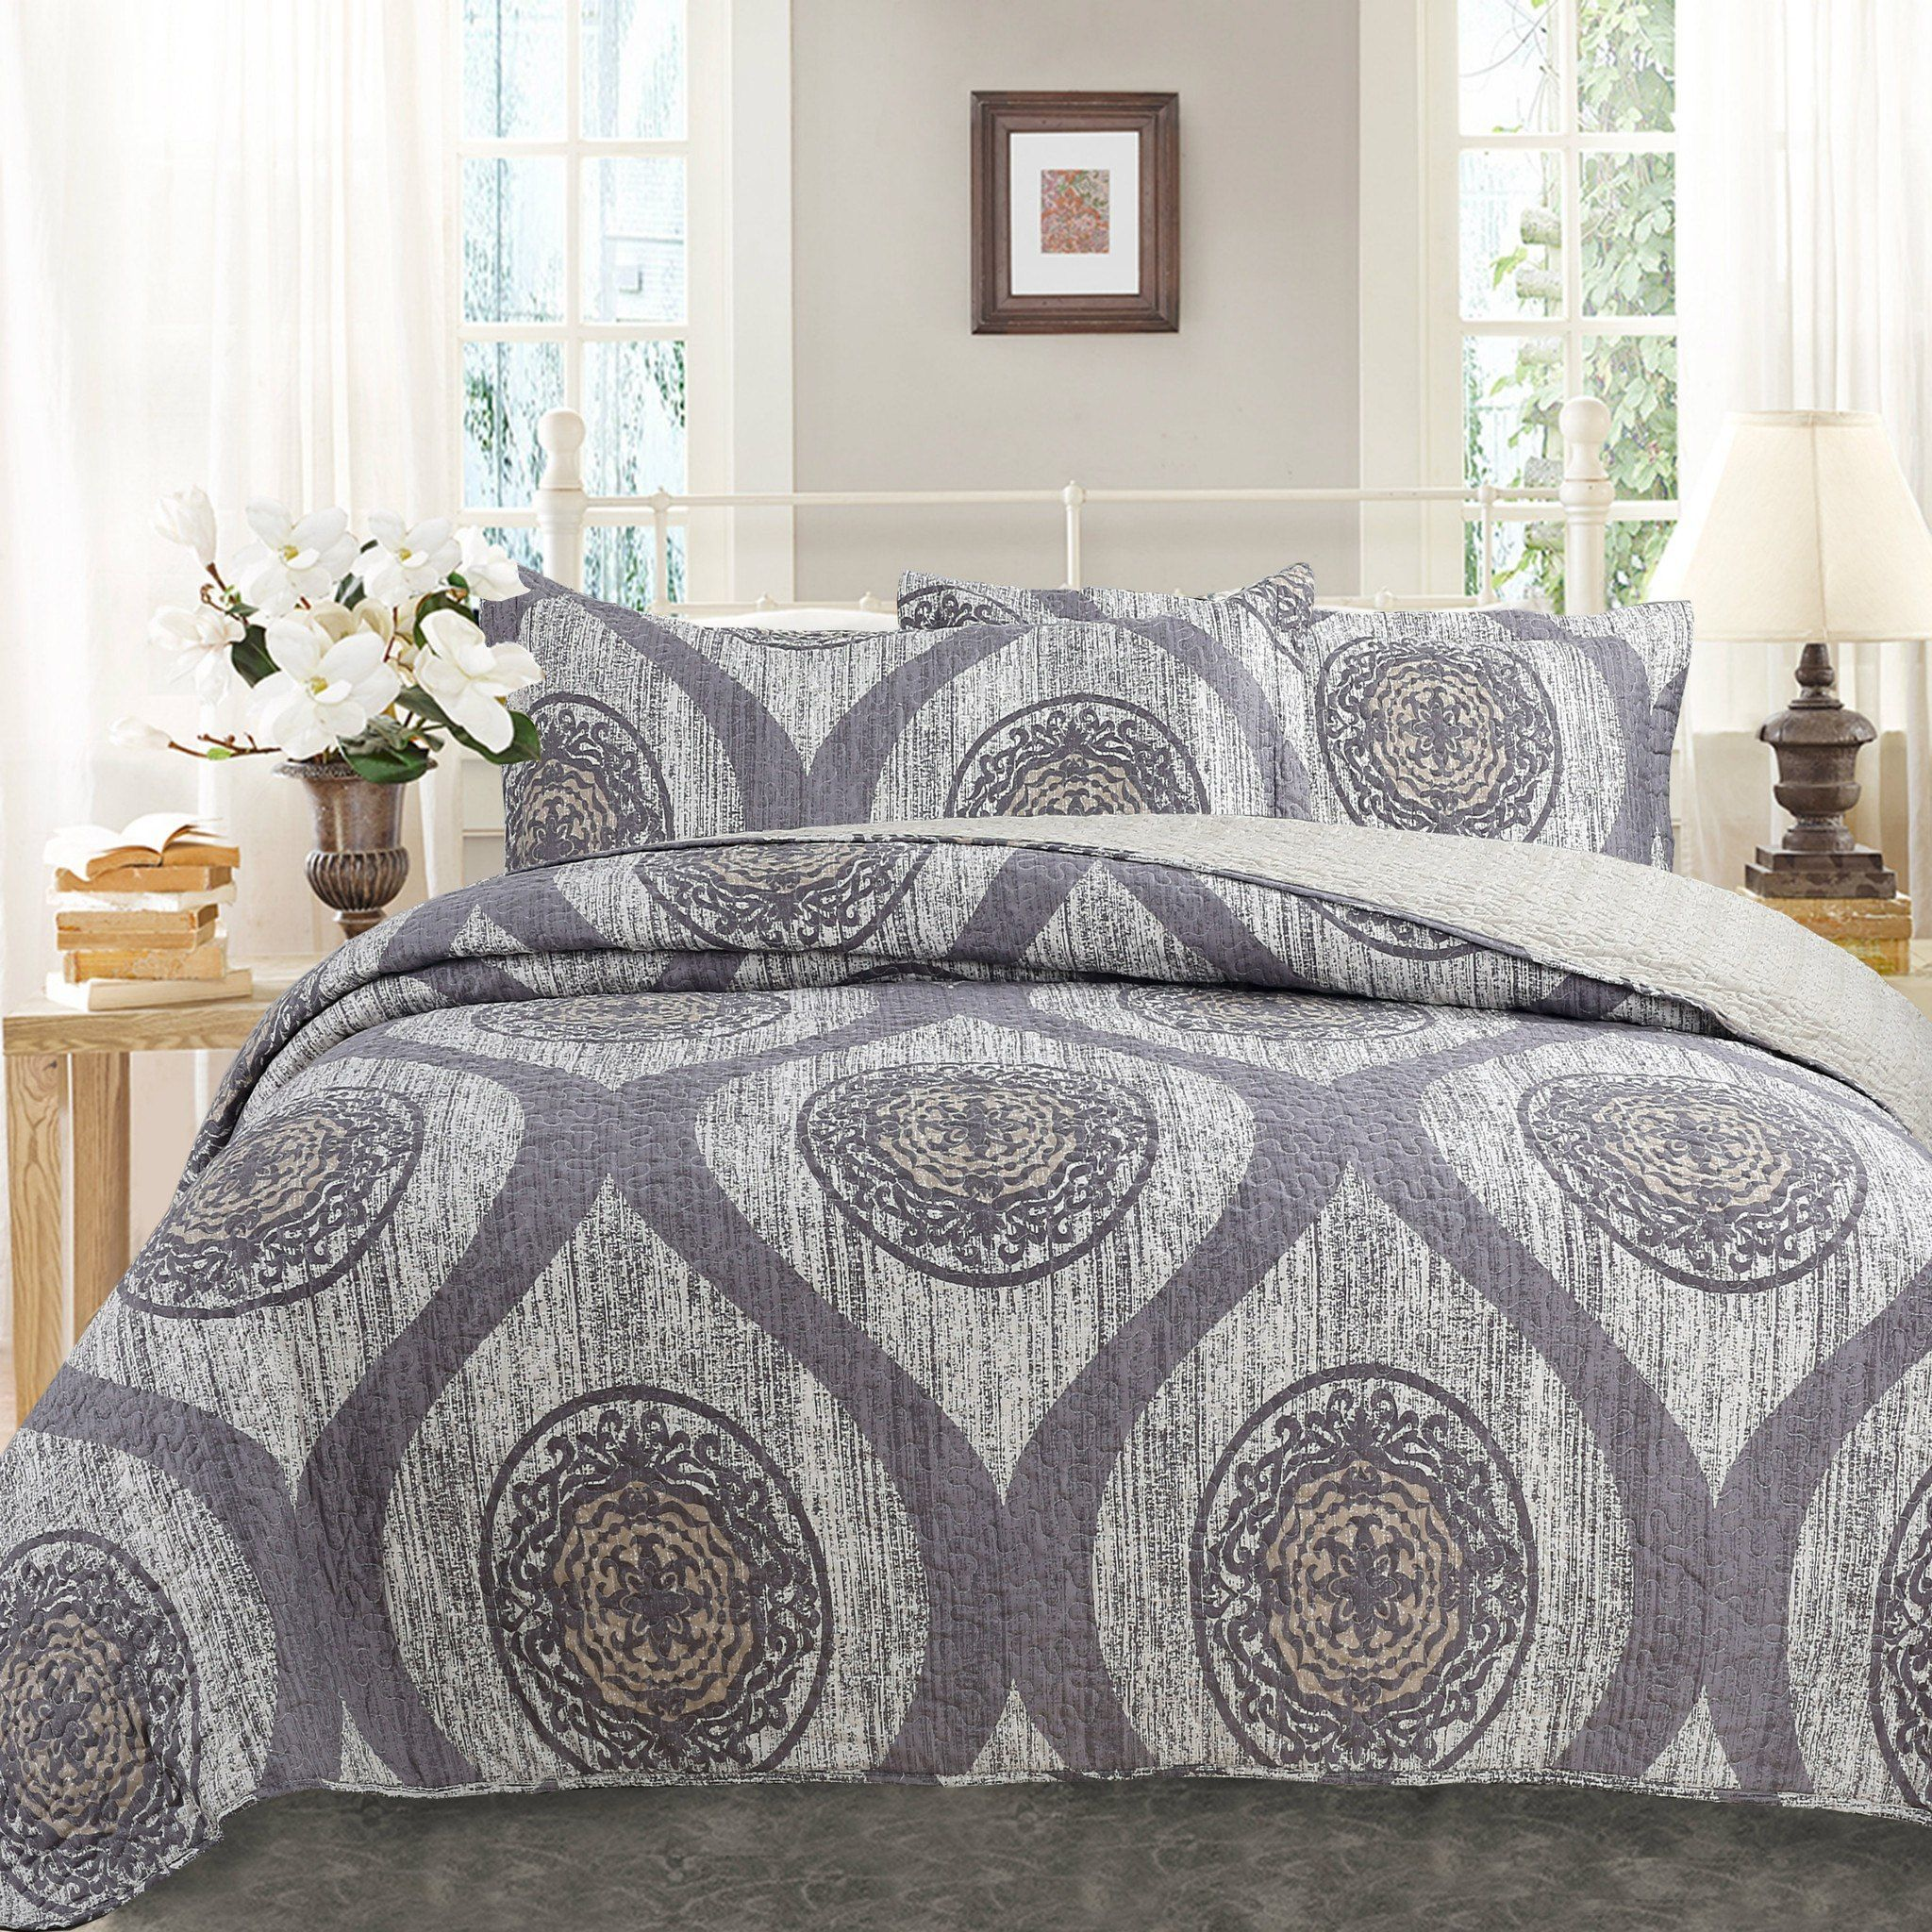 fisher coverlet chenille lazybones quilted bodacious quilts and grey matelasse bedspreads ribbon bed bedding coverlets skirt ivory fashioned flossy quilt zq bedspread to eileen engrossing